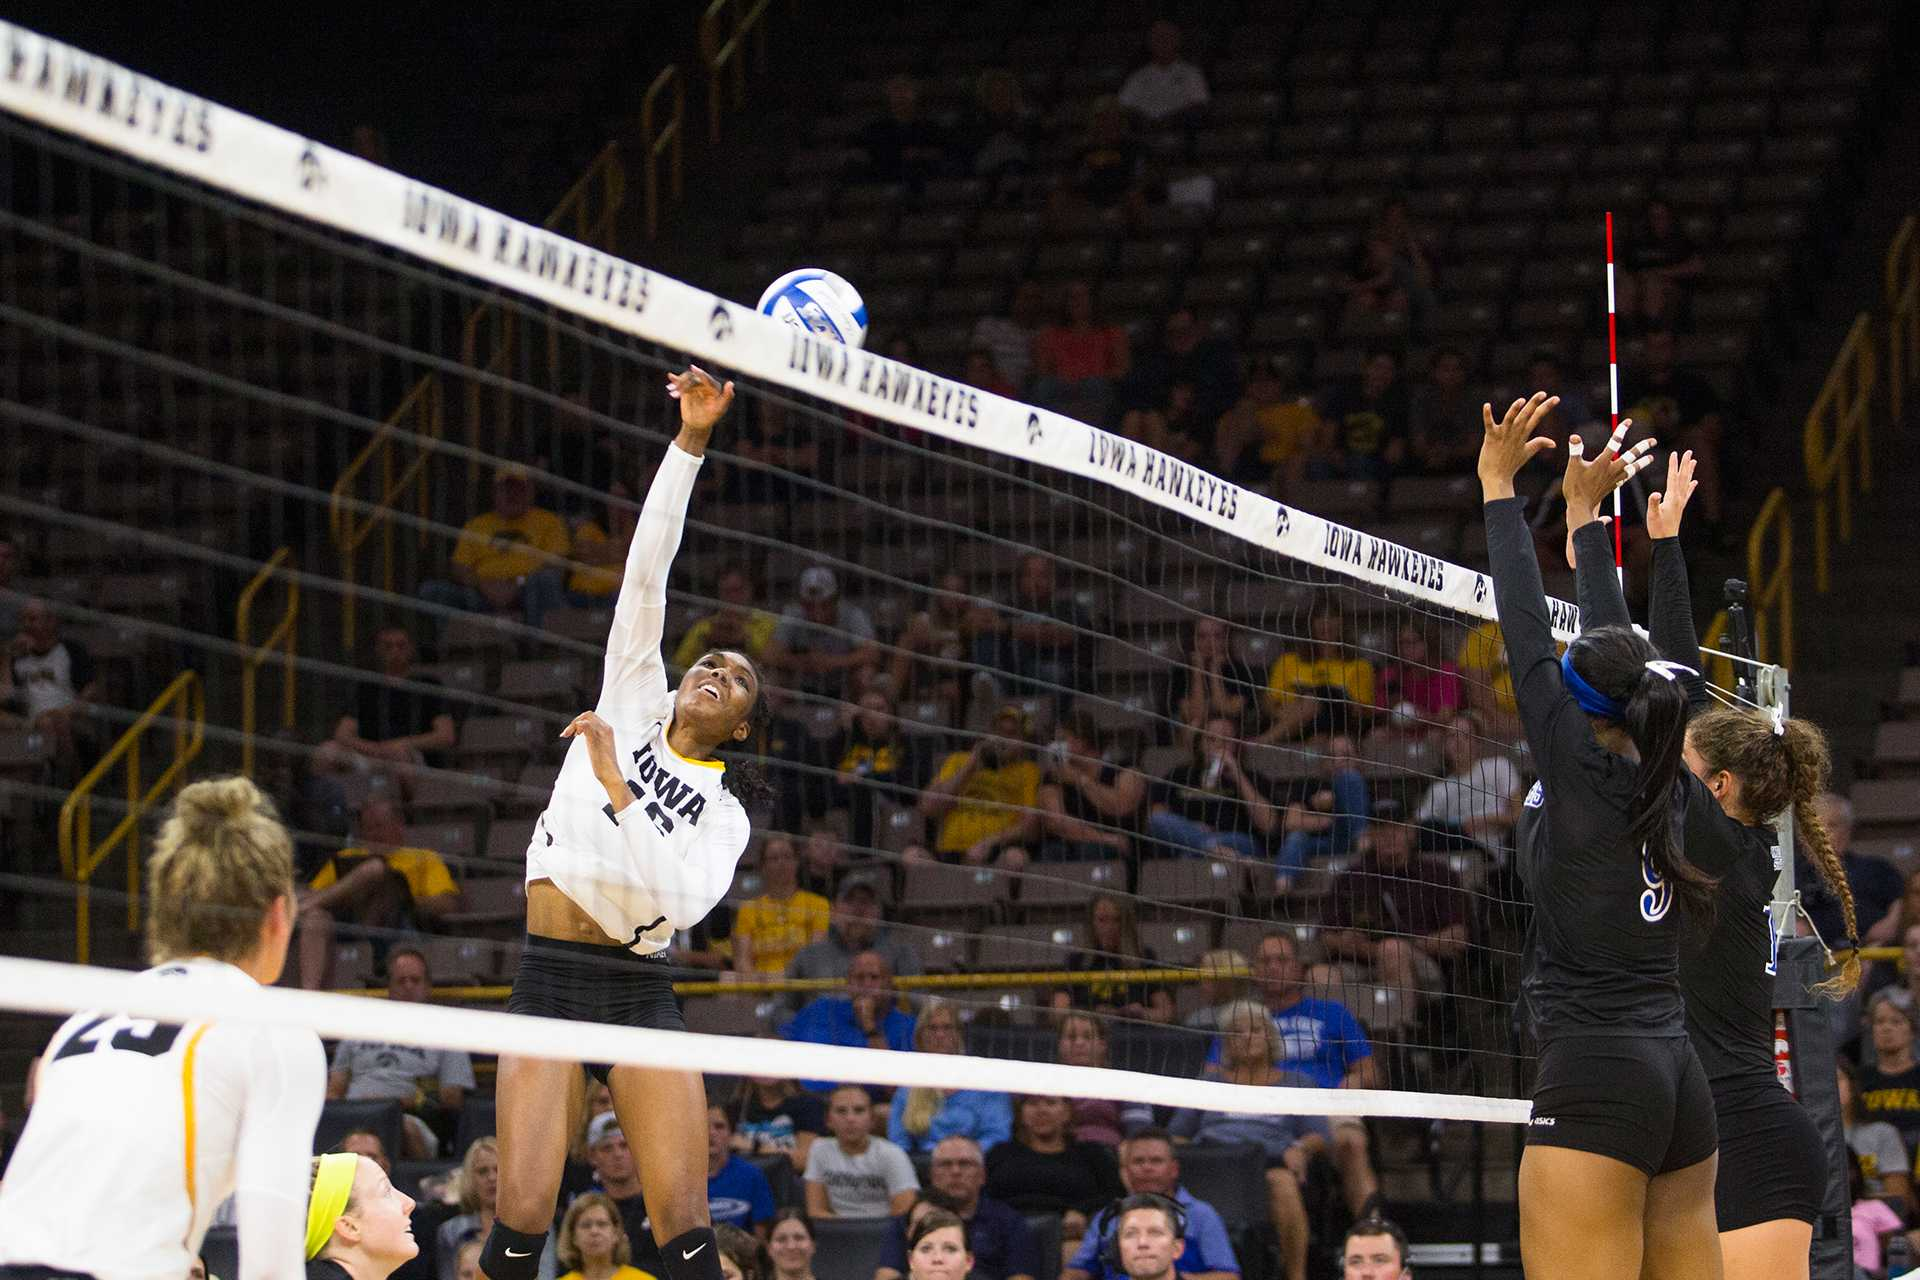 Iowa outside hitter Taylor Louis spikes a ball over the net during an NCAA volleyball game between Iowa and Indiana State on Saturday, Sept. 2, 2017. The Hawkeyes defeated the Sycamores, 3-1. (Joseph Cress/The Daily Iowan)